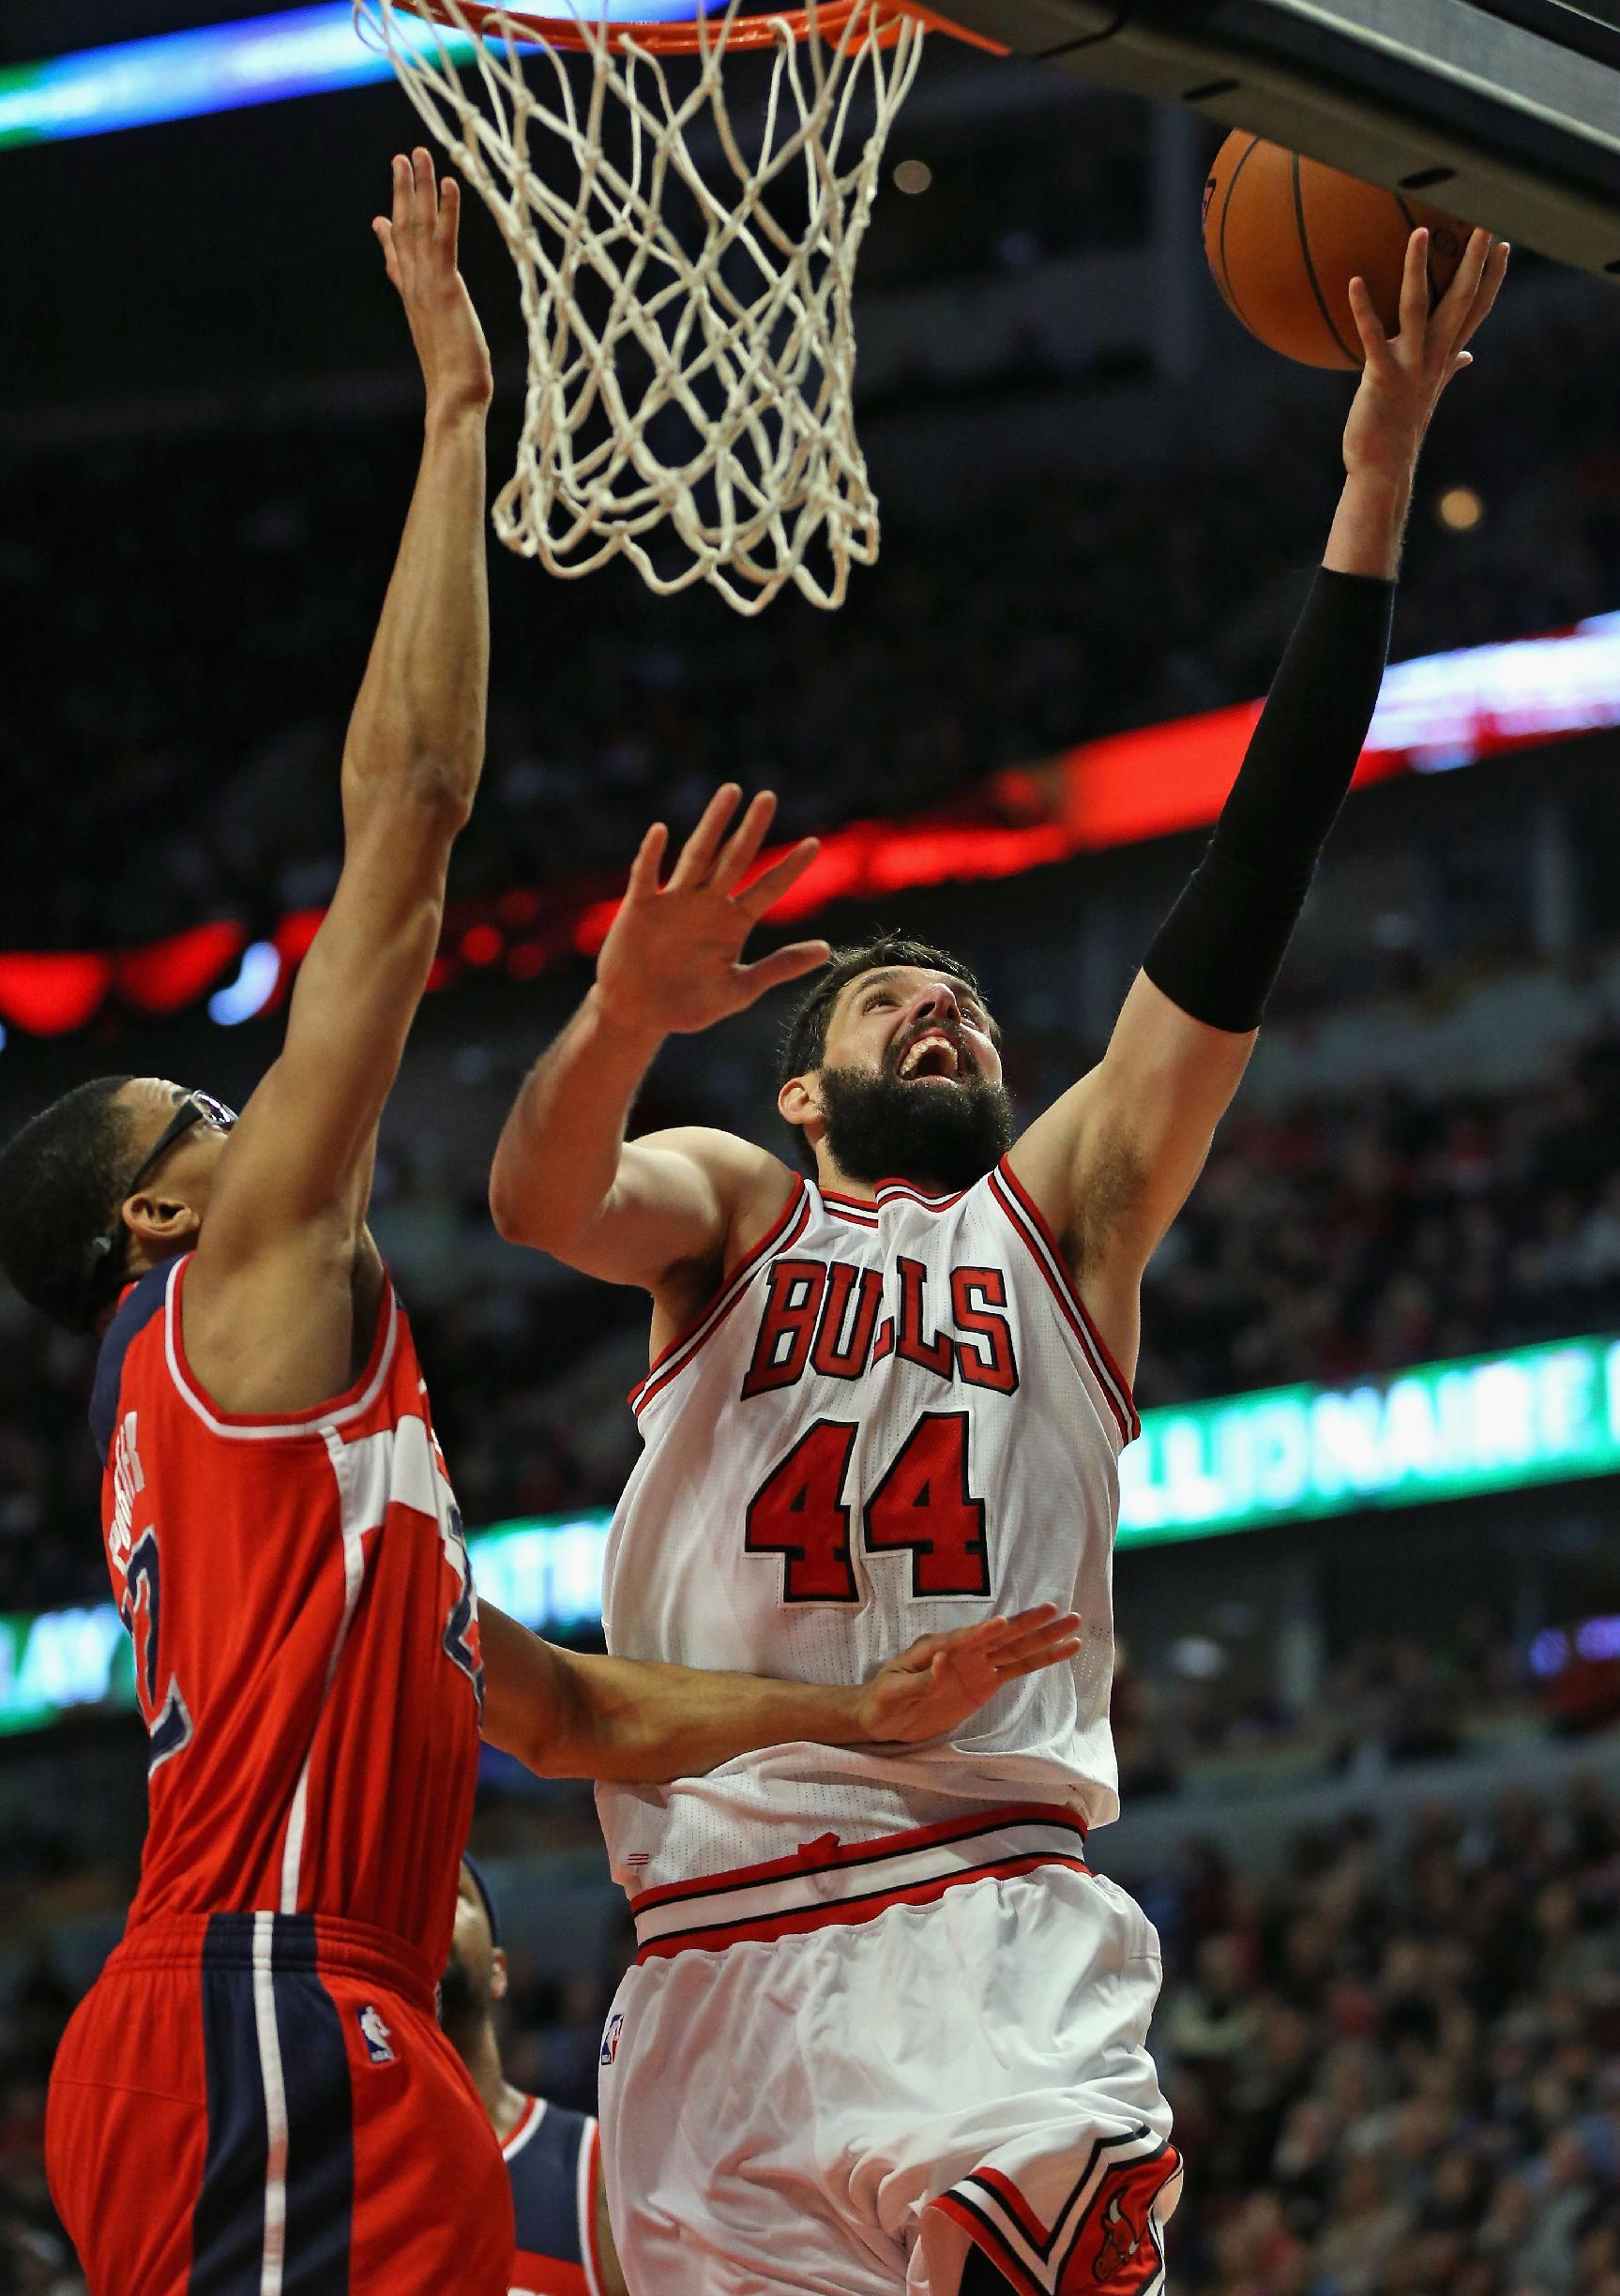 No Rose, no Butler, short-handed Bulls beat Wizards 97-92